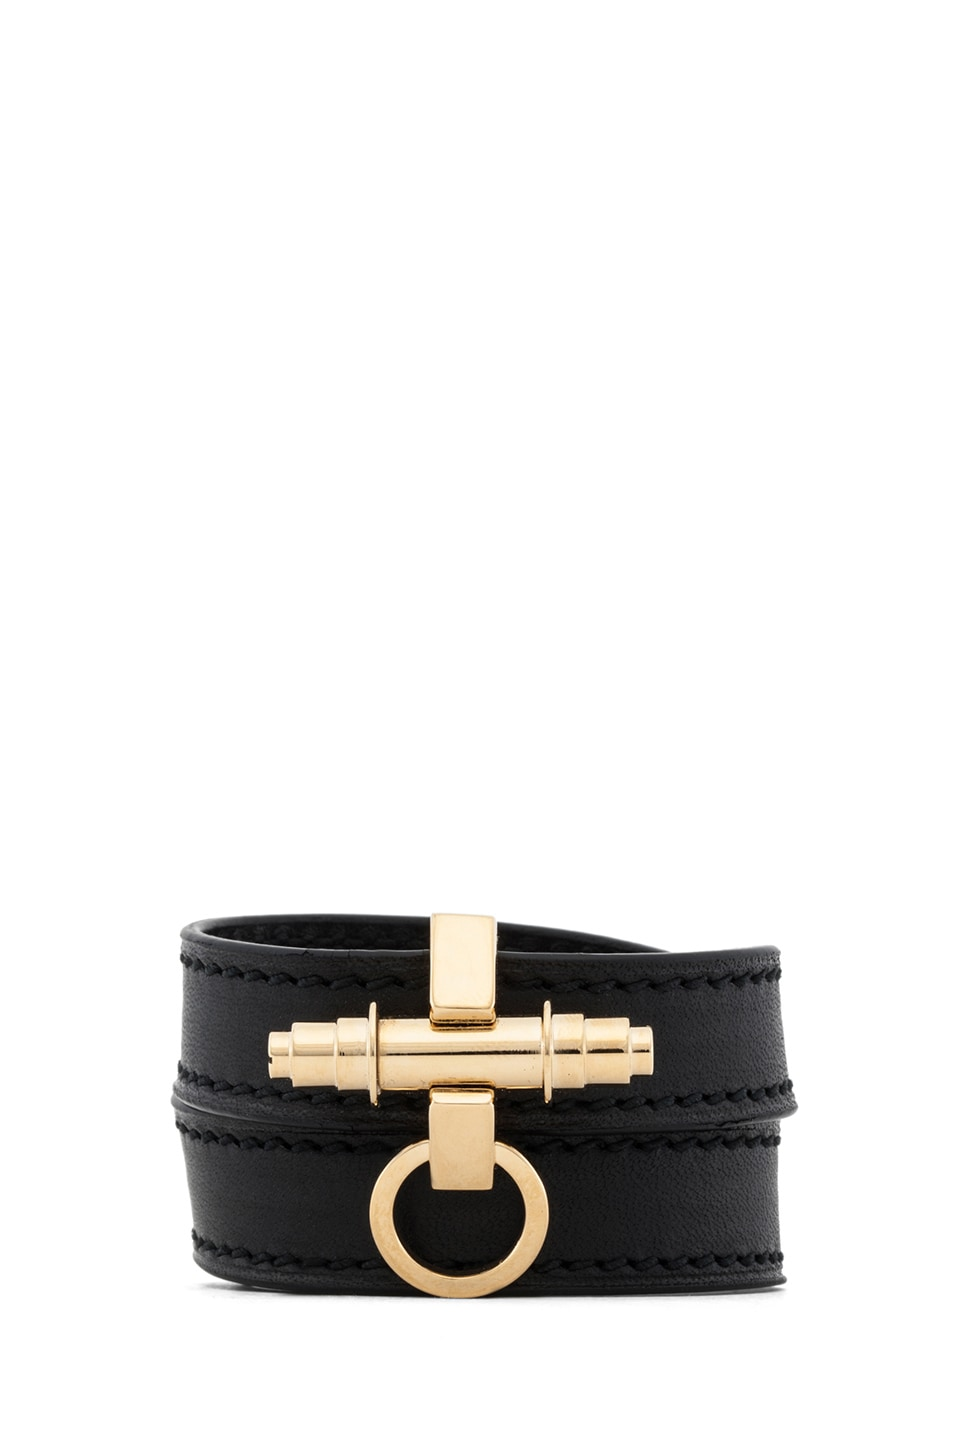 bd686680b8 Image 1 of Givenchy Obsedia 3 Row Bracelet in Black